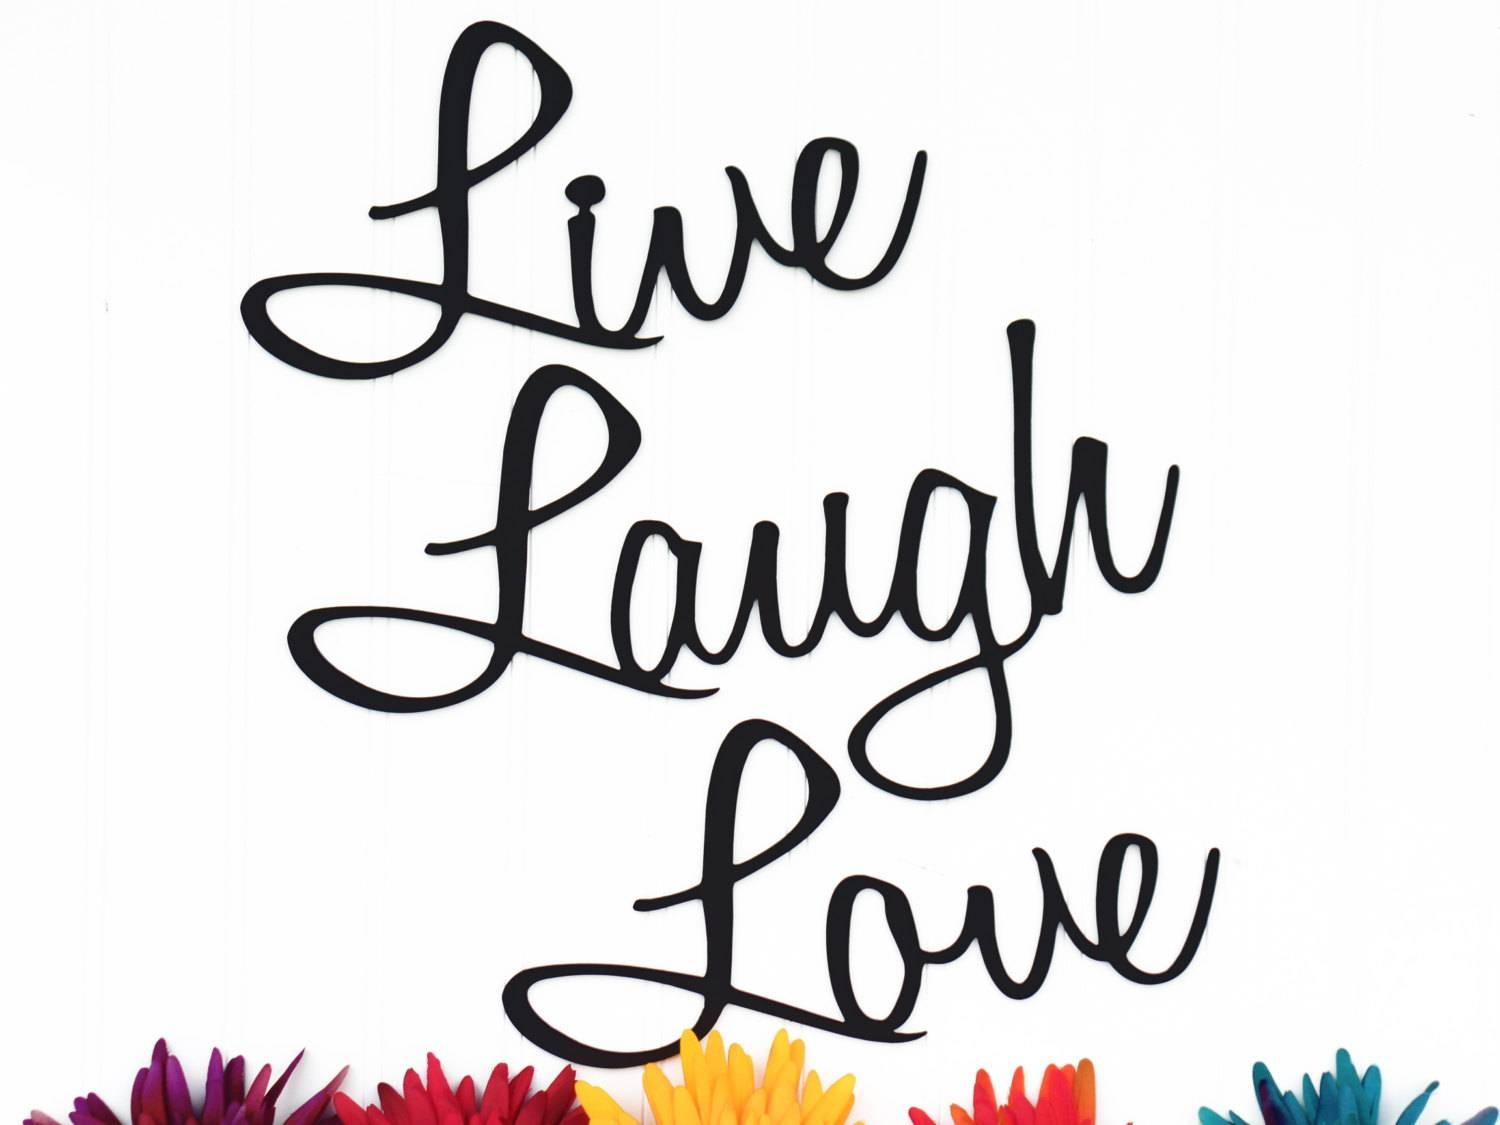 Live Laugh Love Wall Decor Patio Decor Lake House Decor With Regard To Most Recent Live Love Laugh Metal Wall Decor (View 10 of 25)